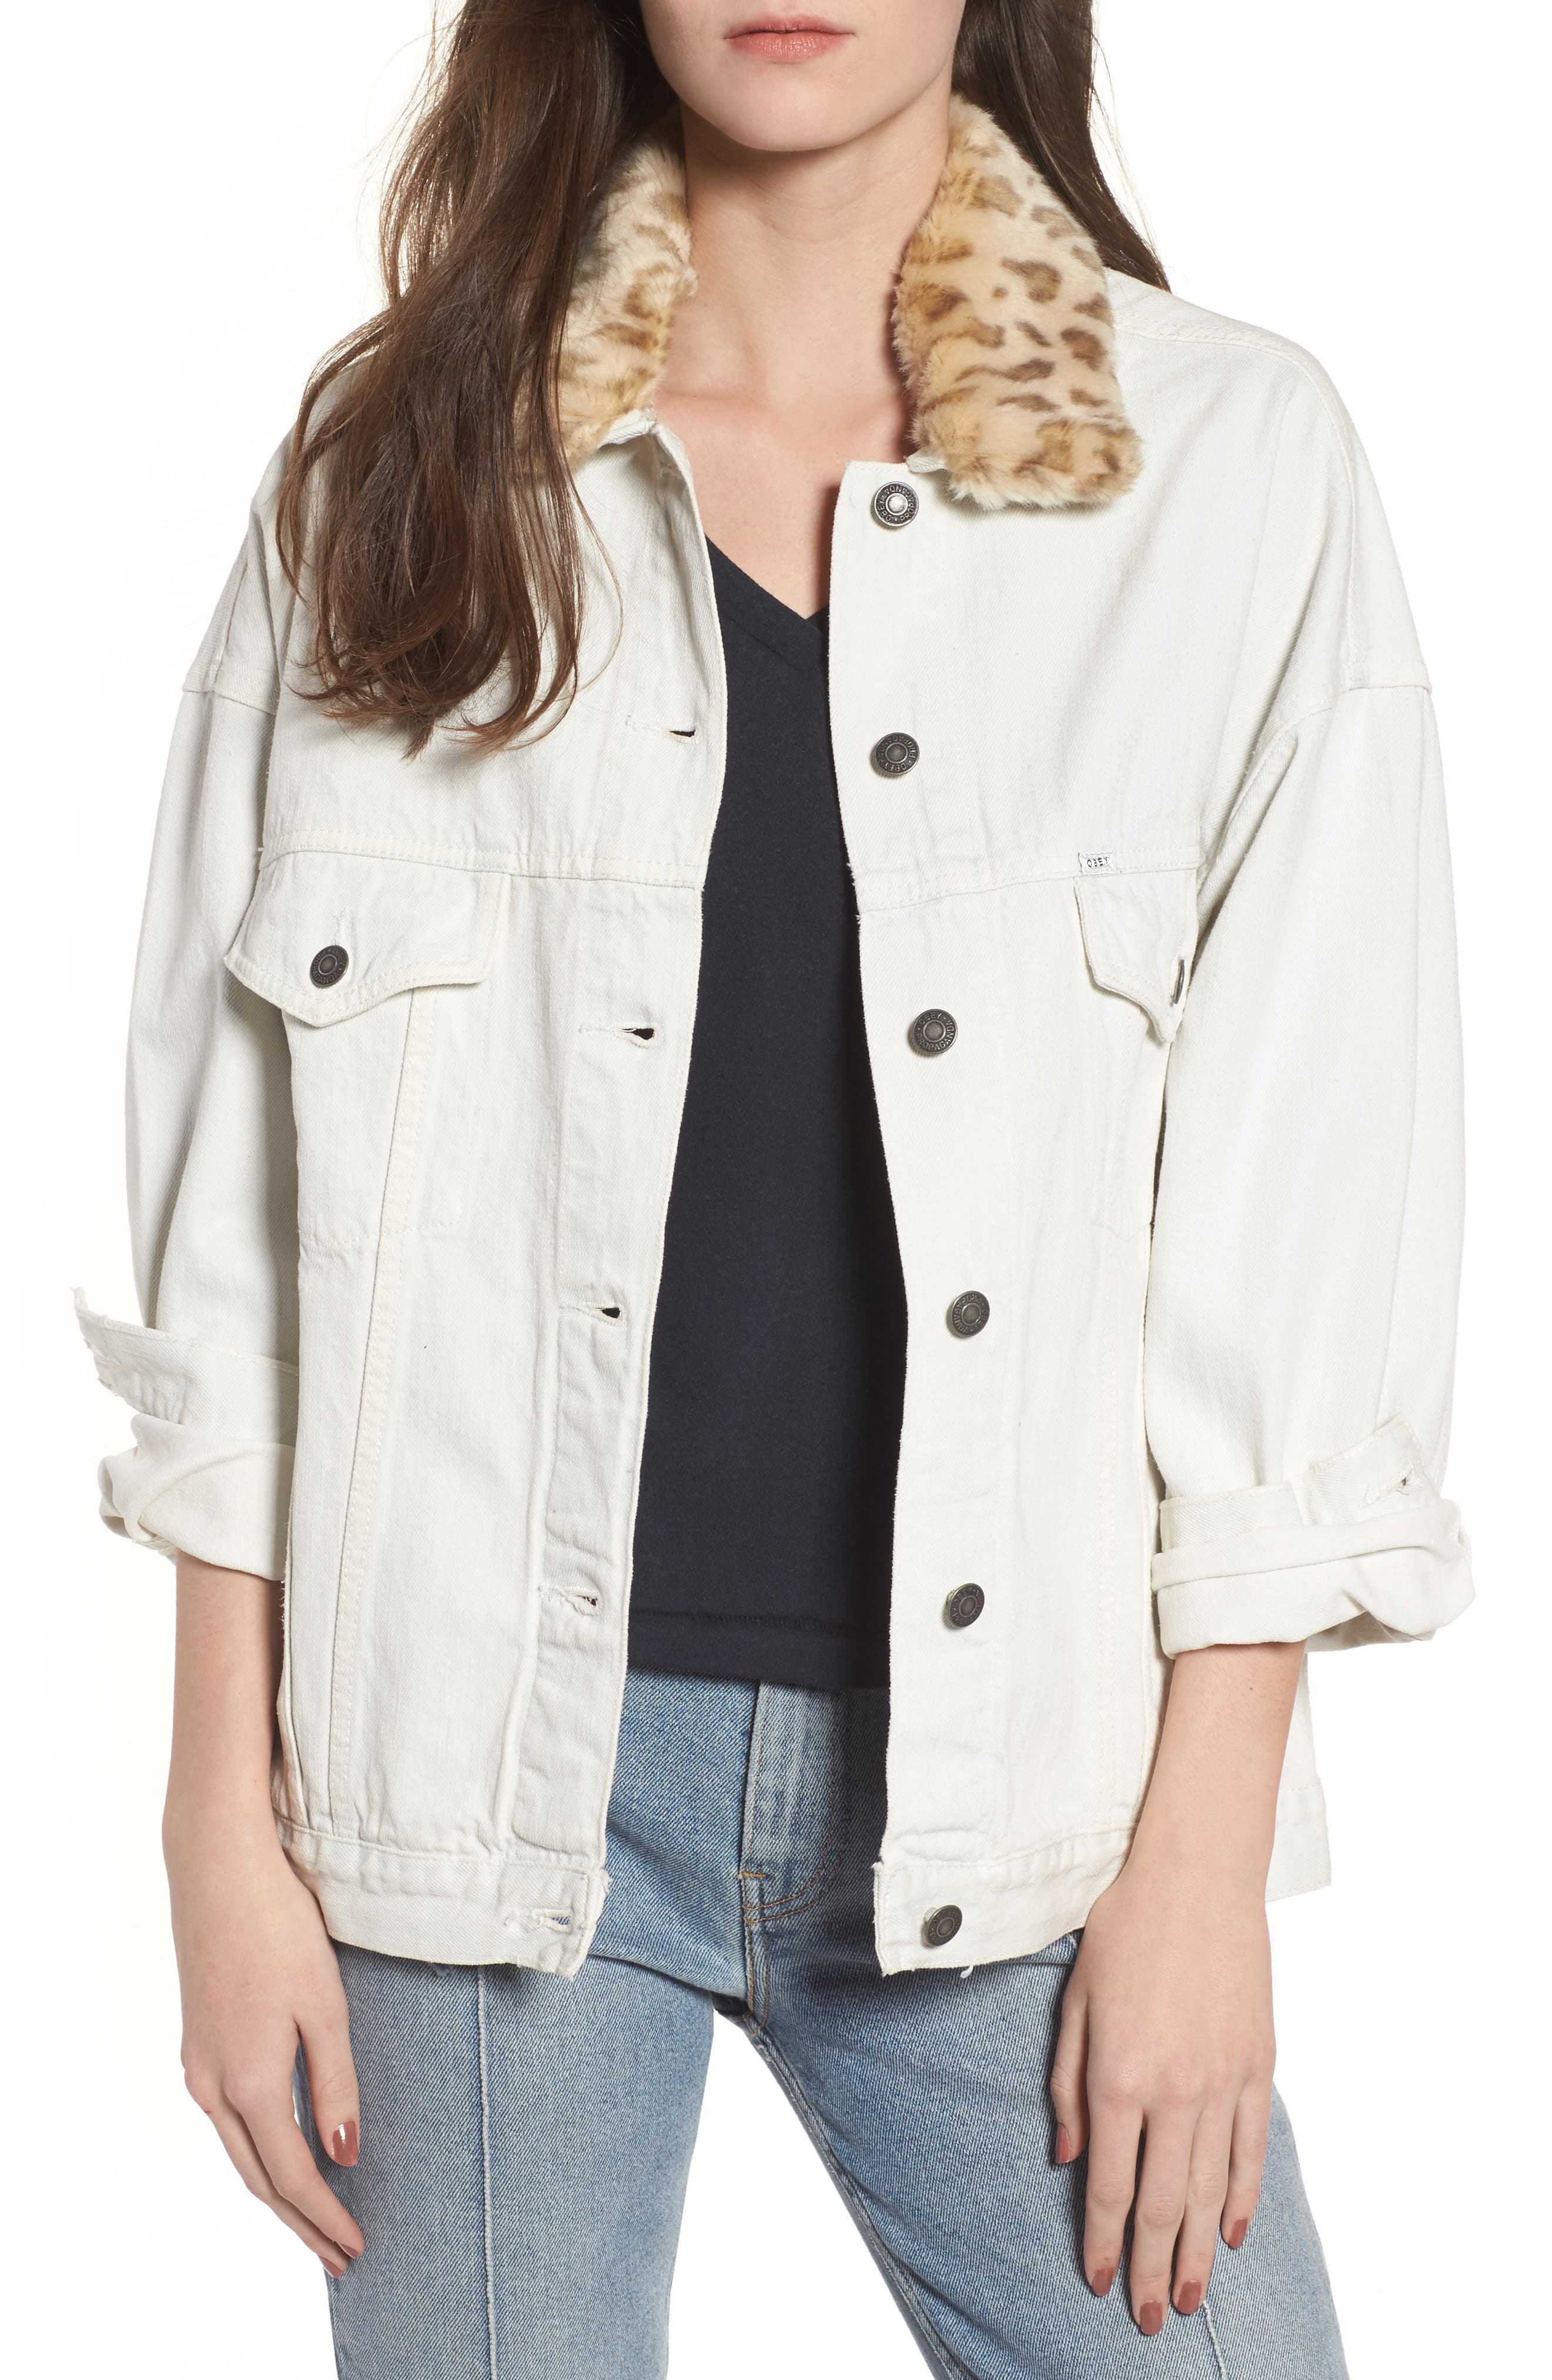 Main Image - Obey Wily Rider Jacket with Removable Faux Fur Collar